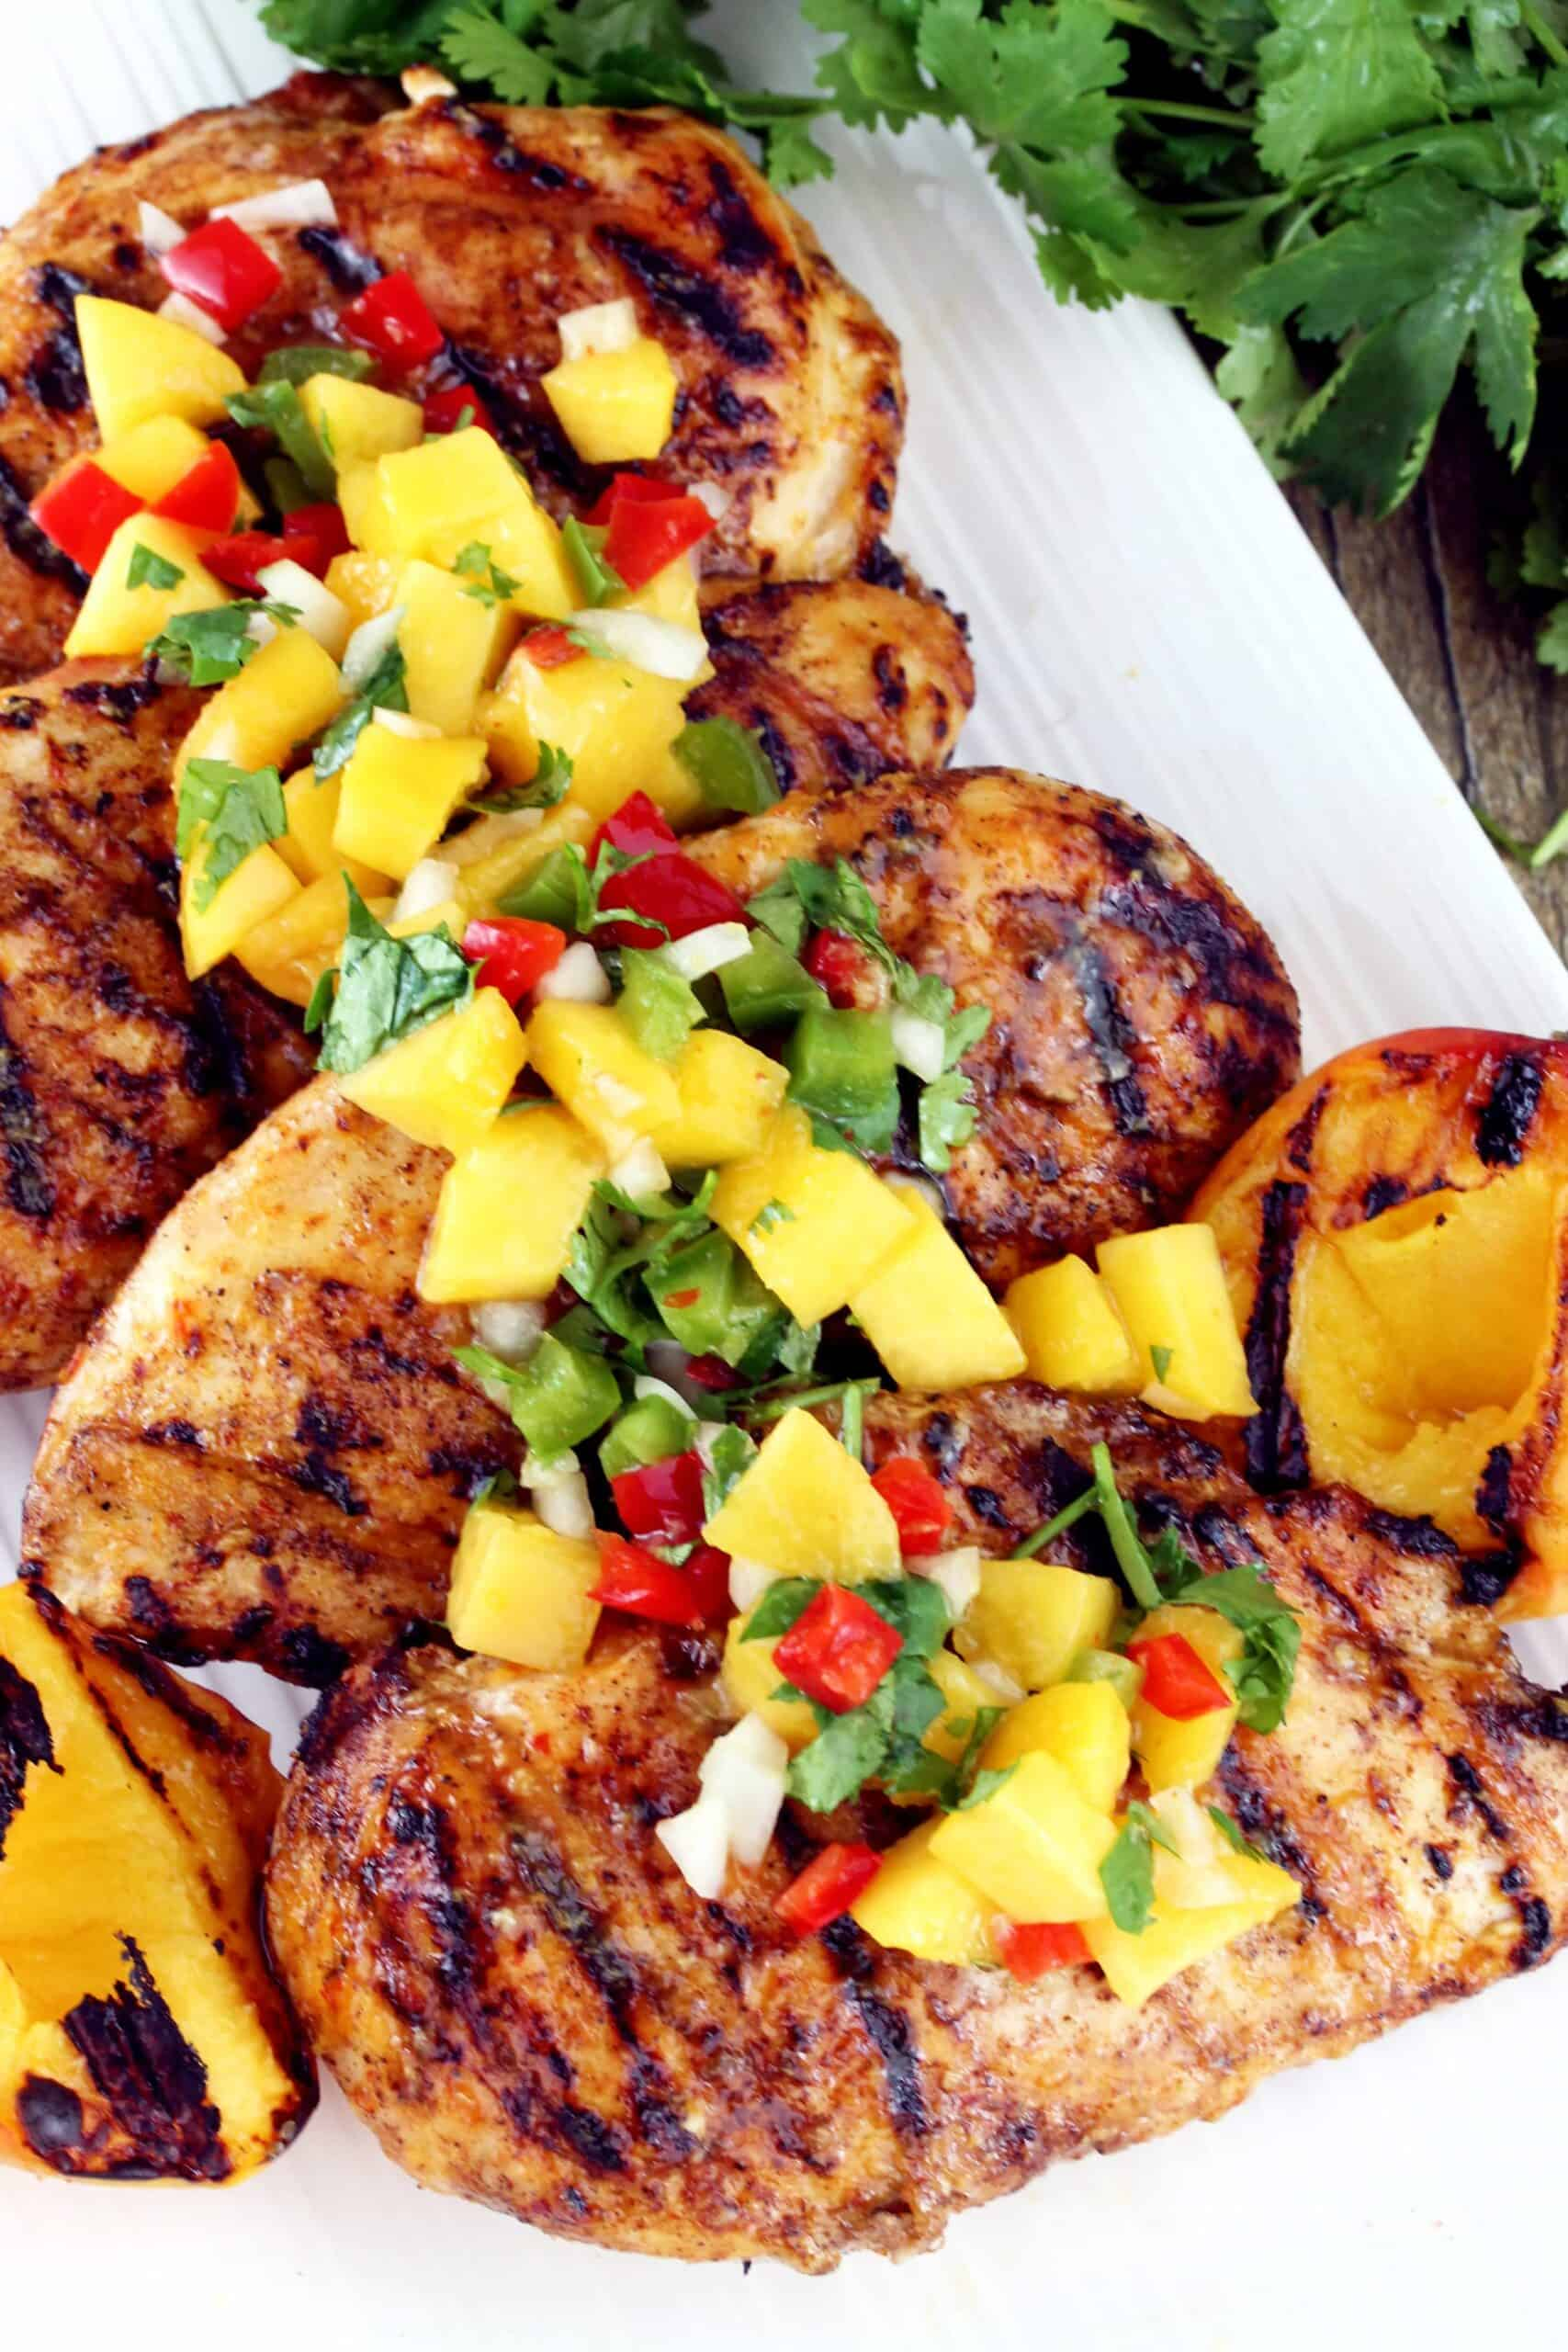 Bird's eye view of grilled chicken topped with a chipotle peach glaze.